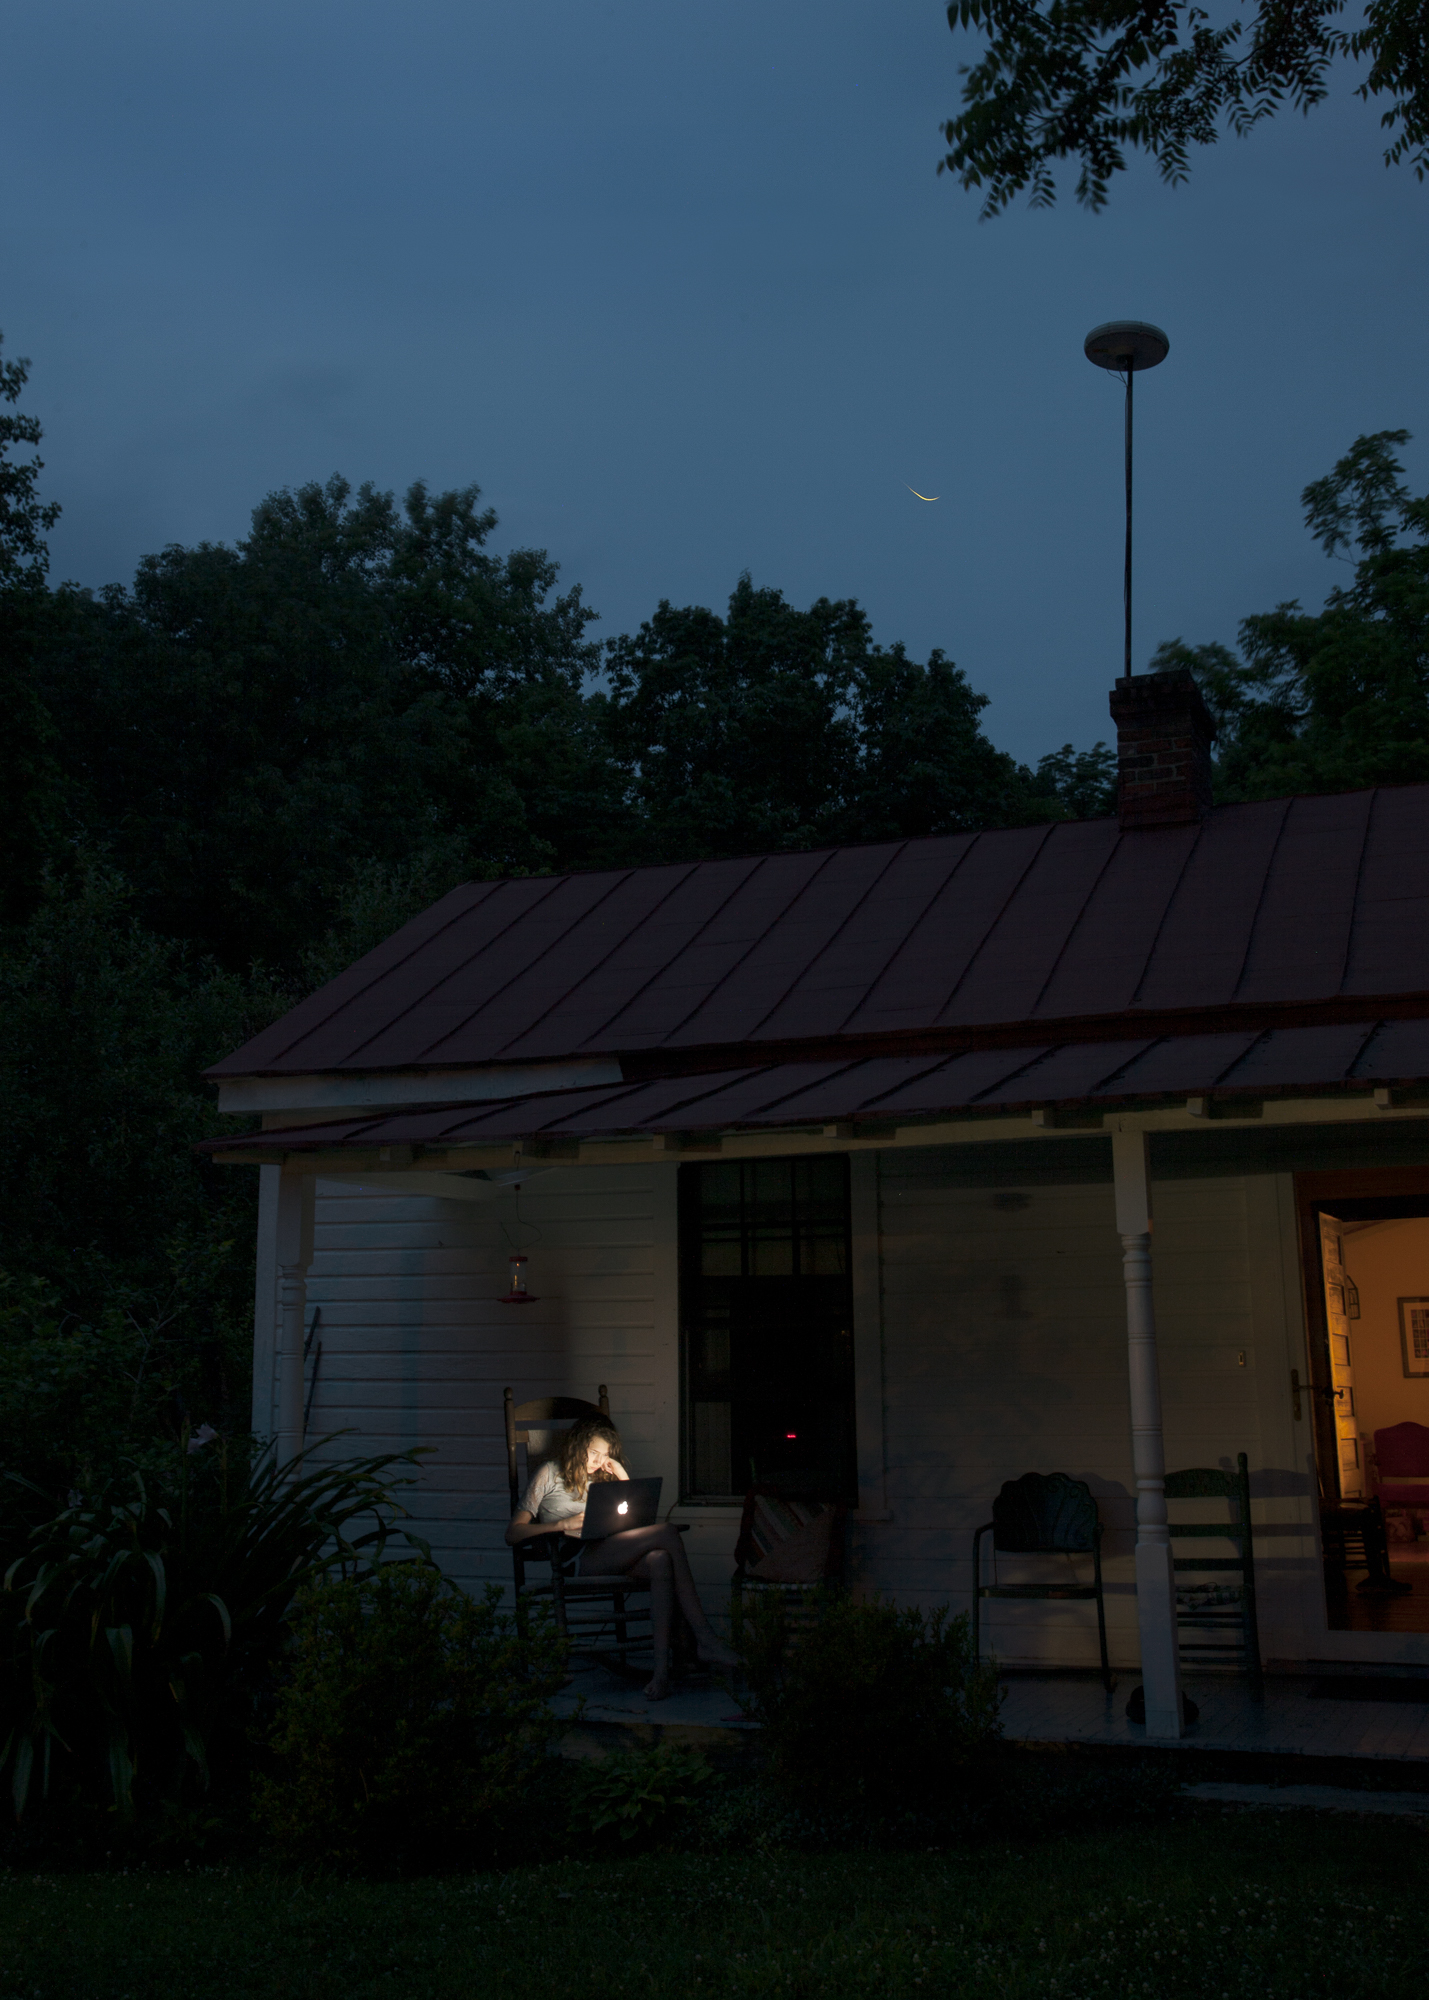 fiona on porch with firefly, danville, VA 2016.jpg